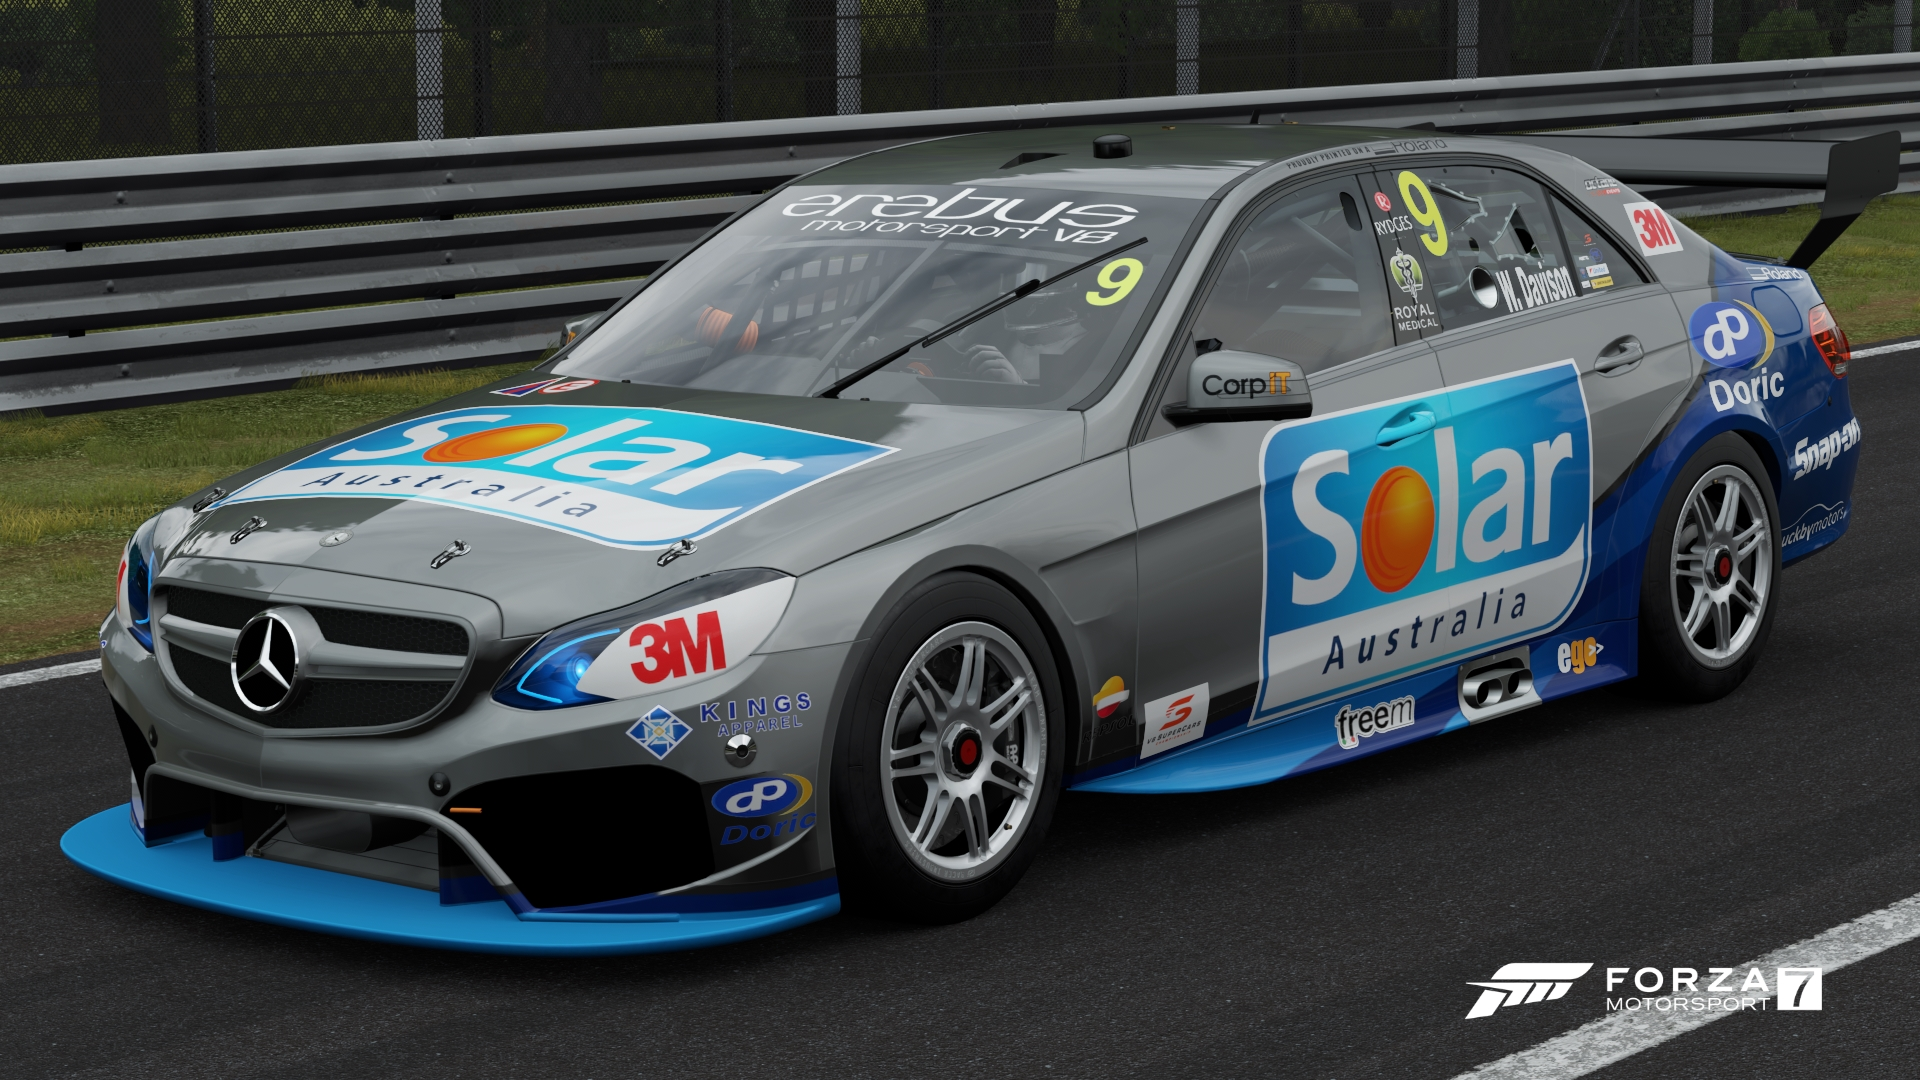 Mercedes benz e63 amg v8 supercar forza motorsport wiki for Mercedes benz motorsport